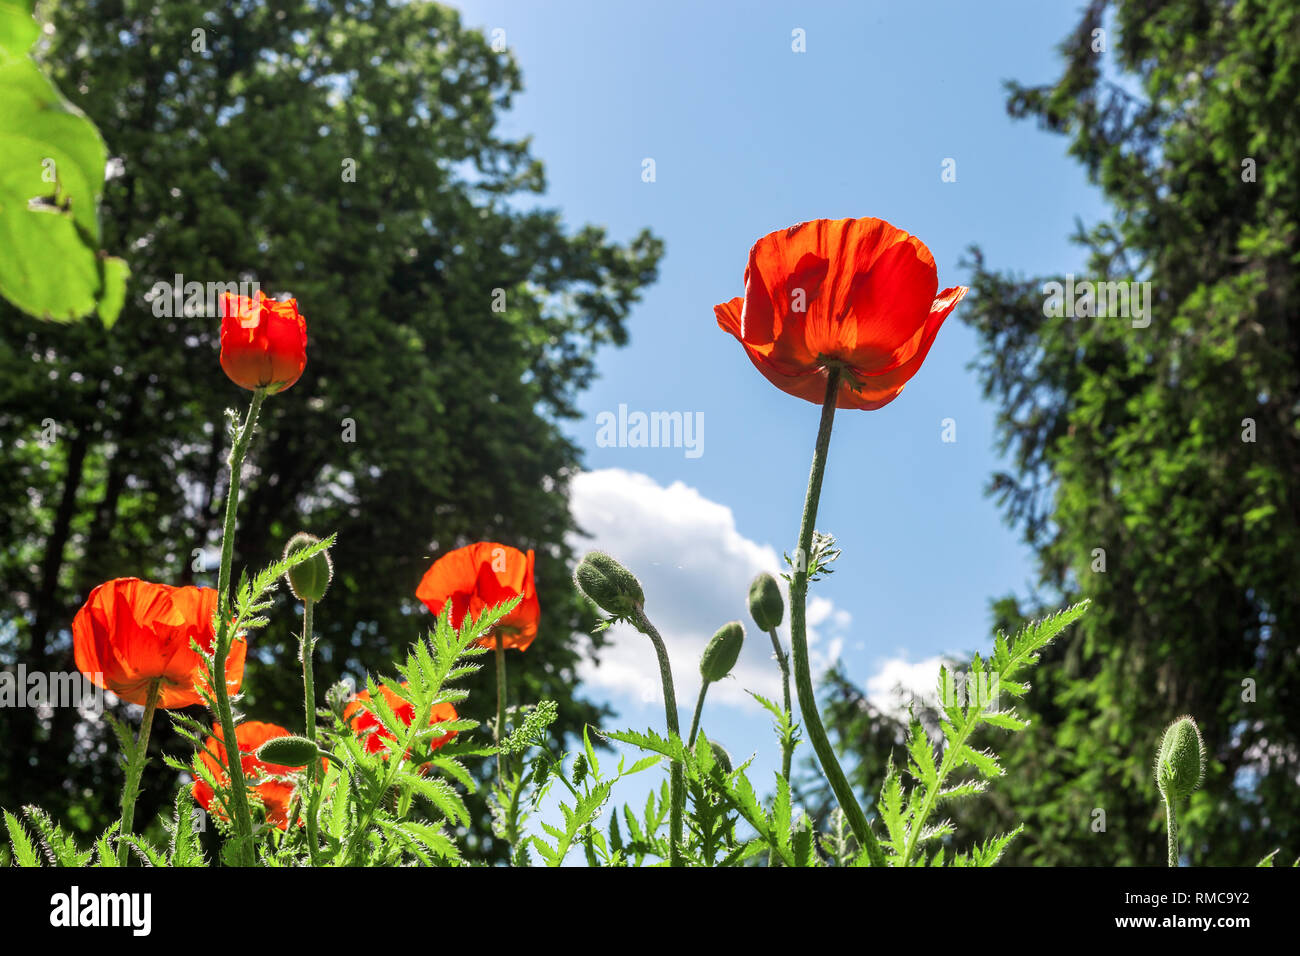 Red poppies flowers growing in green grass at spring cottage garden by blue sky. Beautiful Poppy in summer field at sun light day - Stock Image